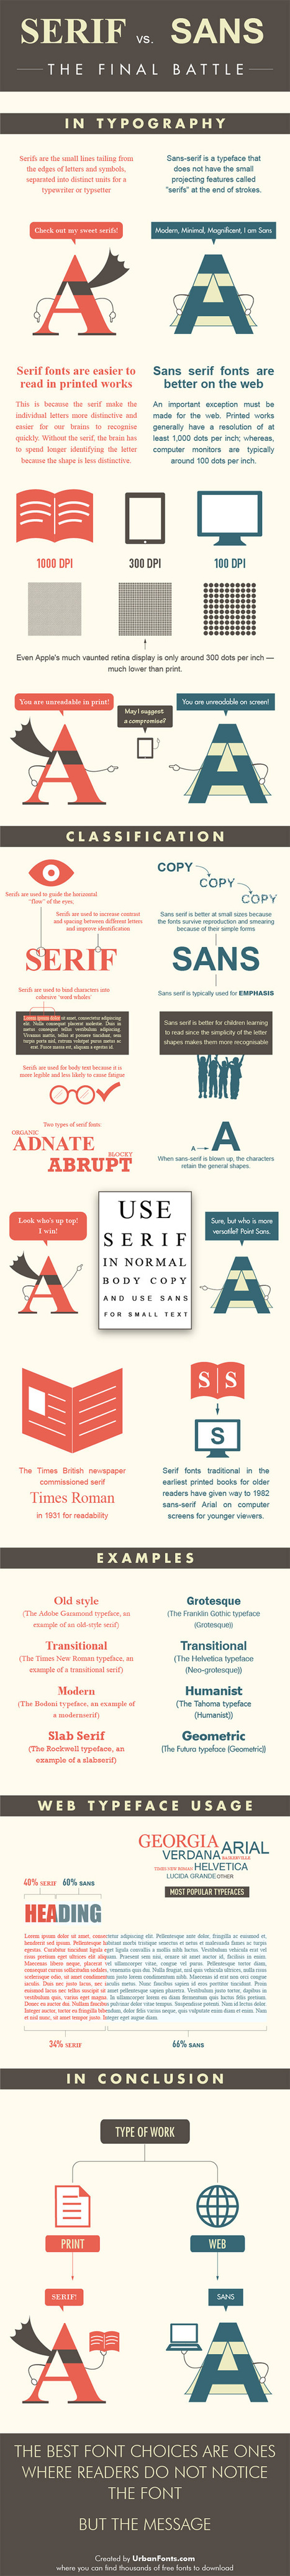 Serif vs Sans: The Final Battle In Typography [Infographic] | ComeStilVuole | Scoop.it